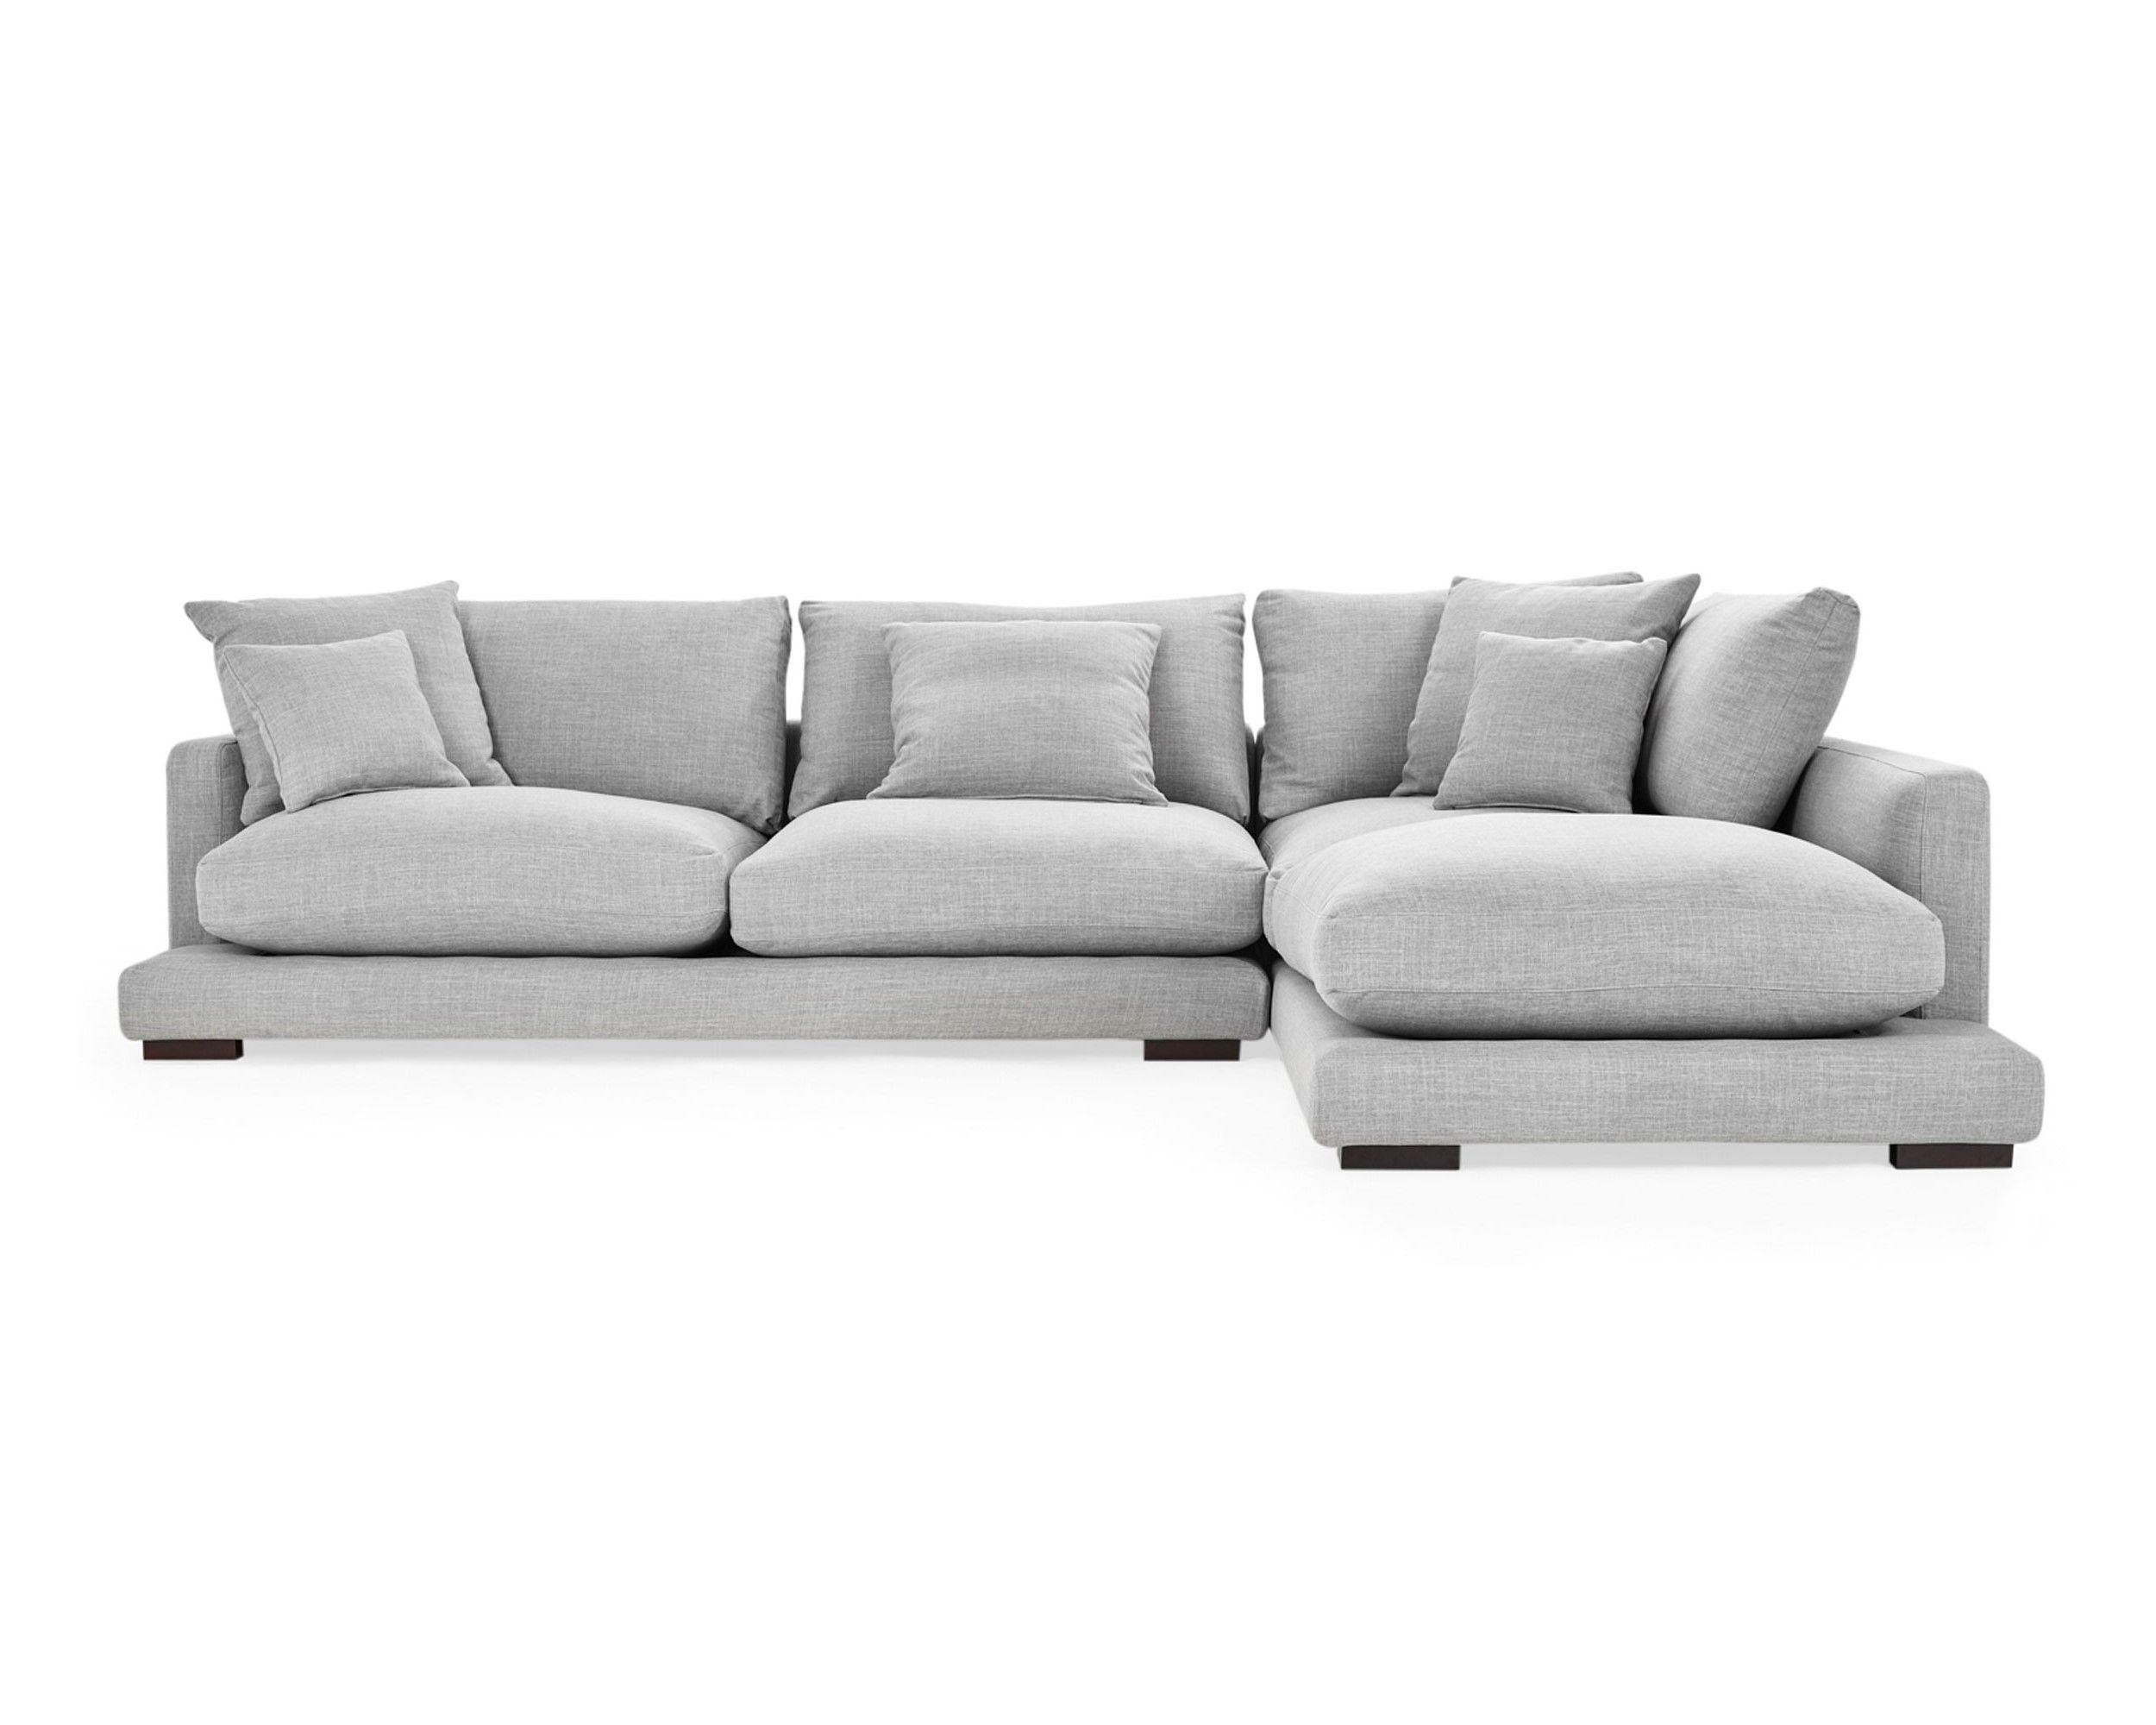 Long Beach Corner Sofa by Lounge Lovers, a Sofas for sale on Style Sourcebook